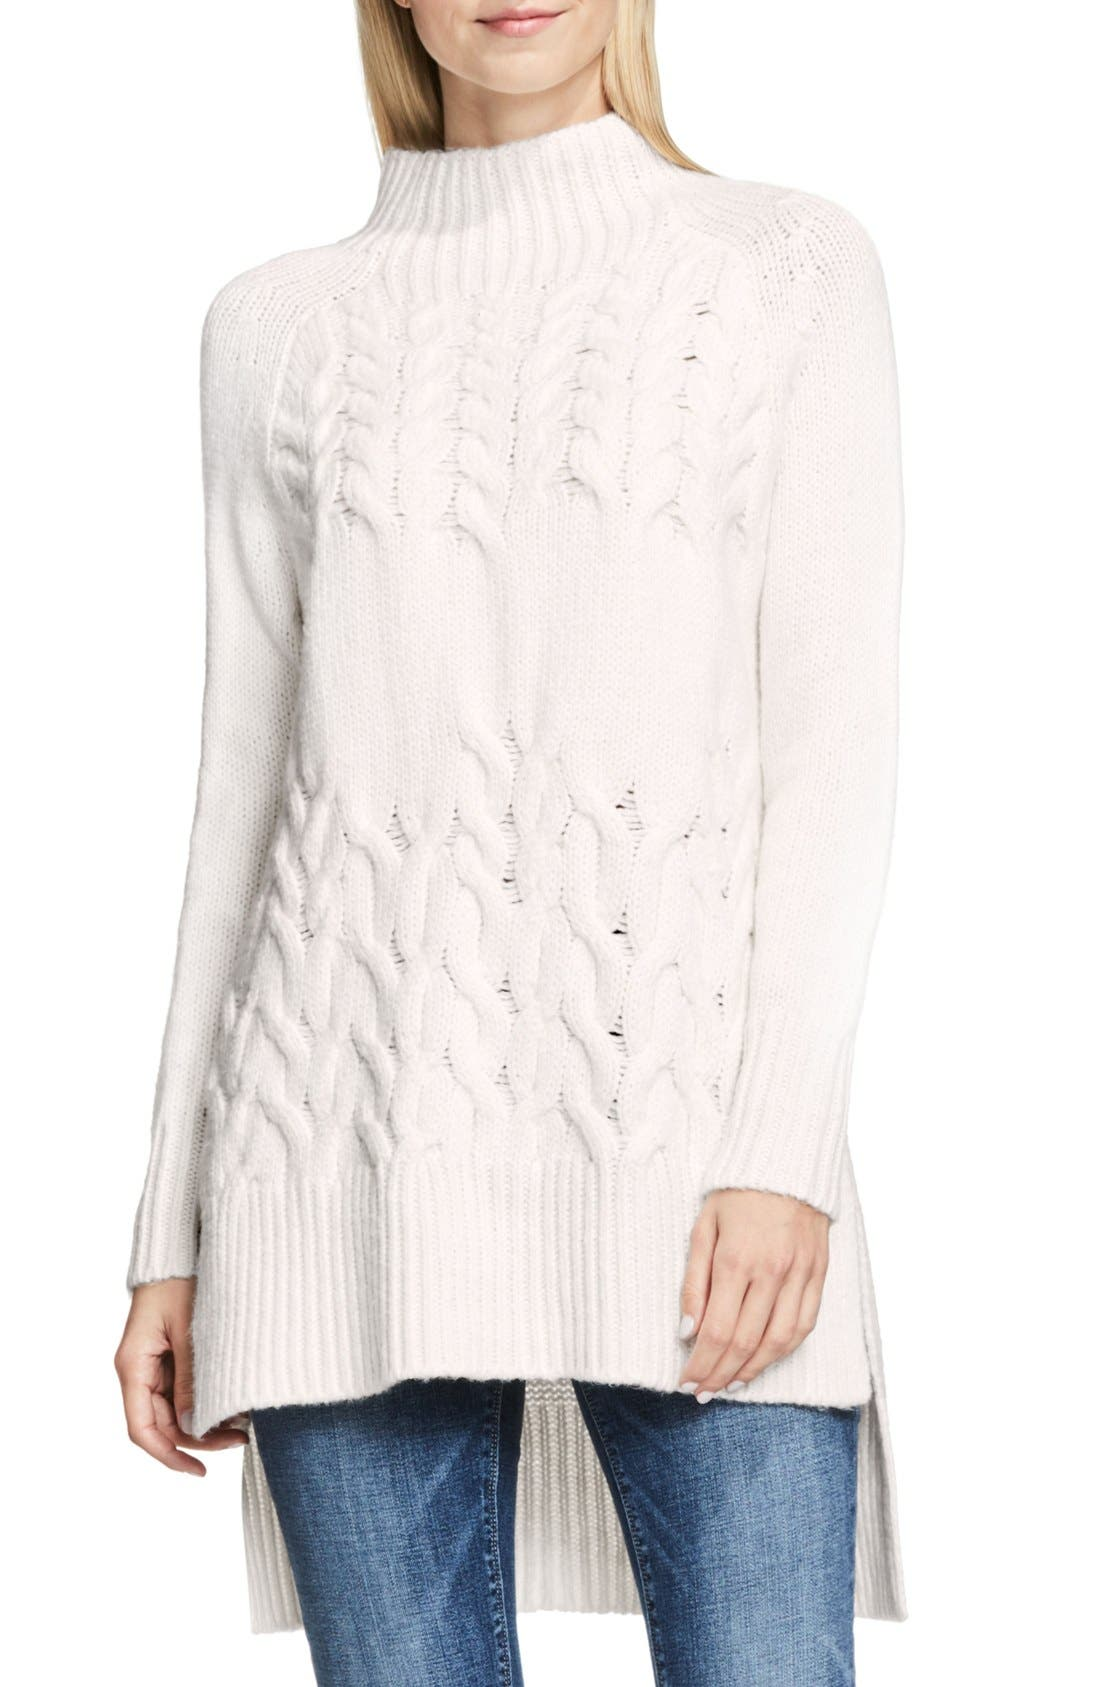 Main Image - Two by Vince Camuto Mock Neck Tunic Sweater